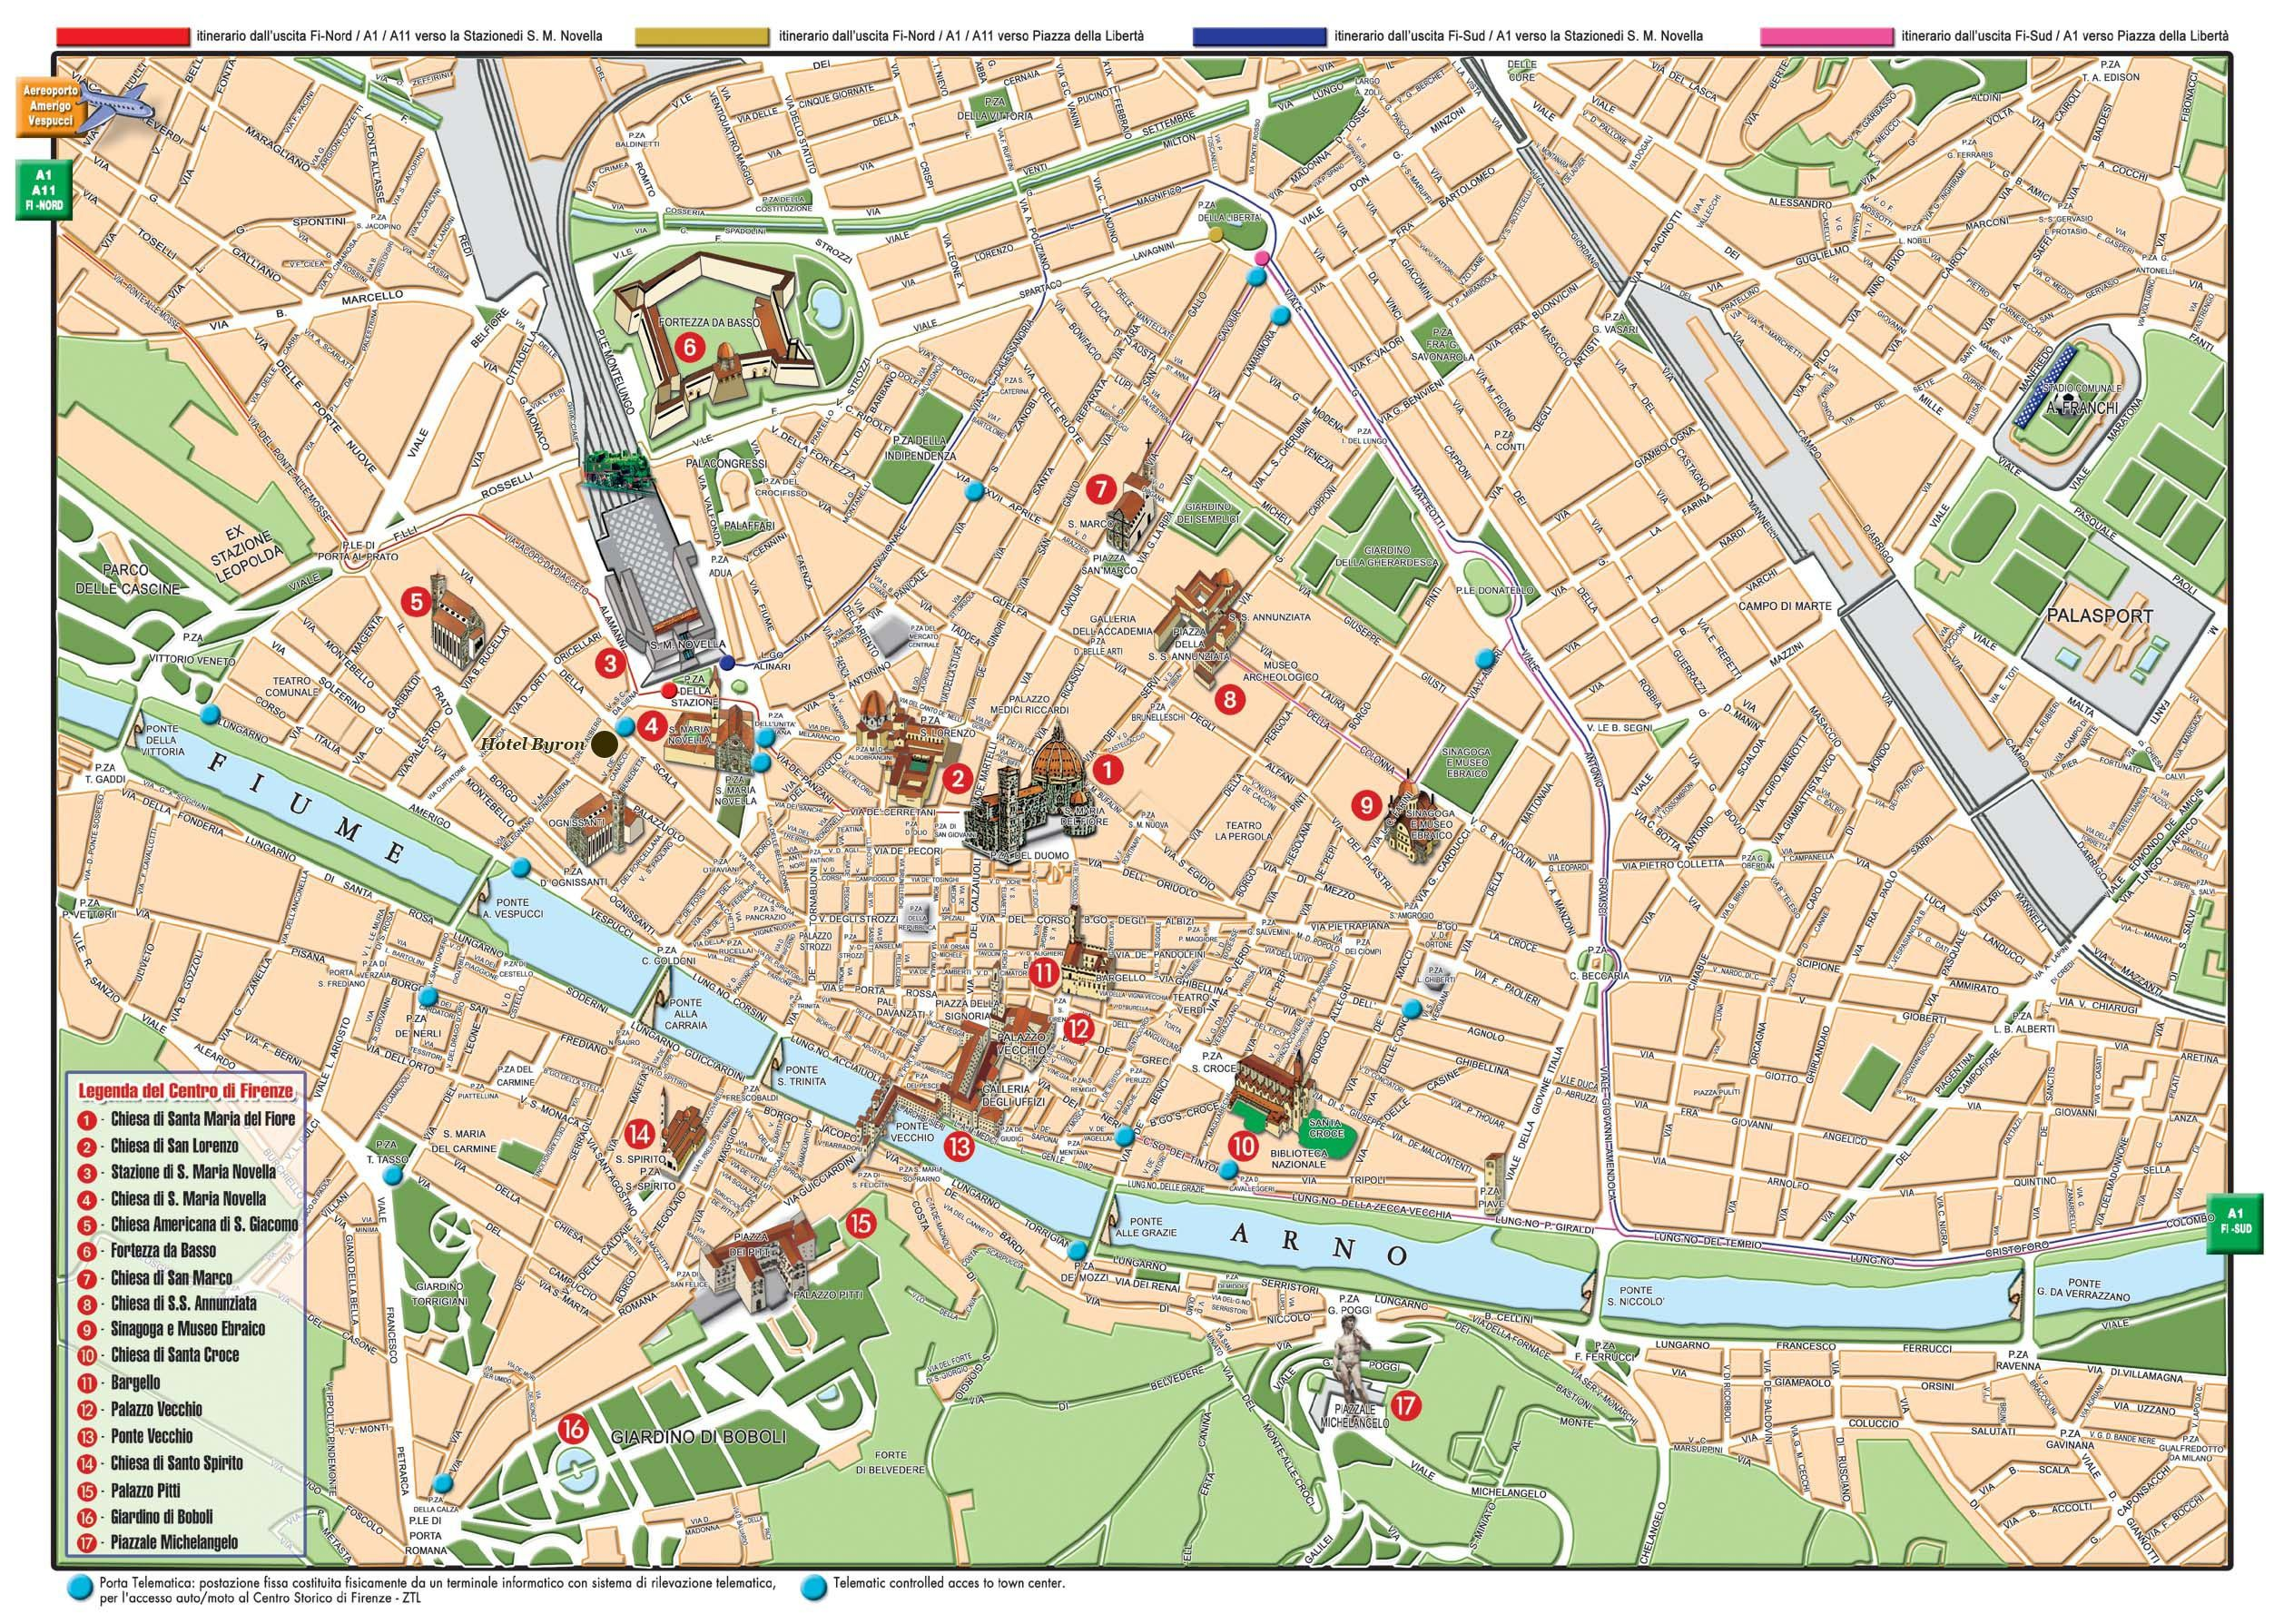 Florence Tourist Map Florence Italy mappery Florence